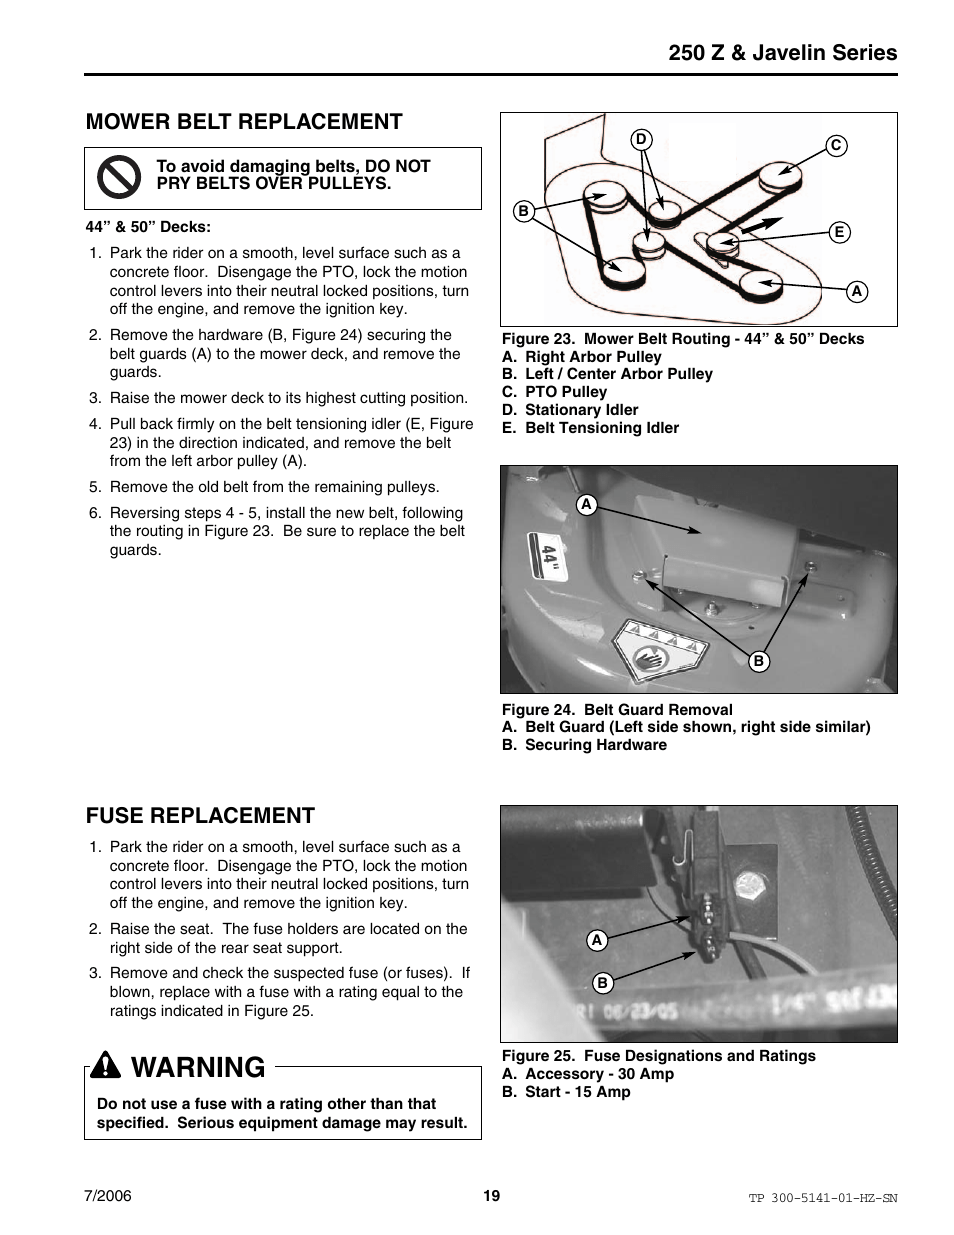 hight resolution of warning 250 z javelin series mower belt replacement simplicity manufacturing rzt22500bve2 user manual page 19 20